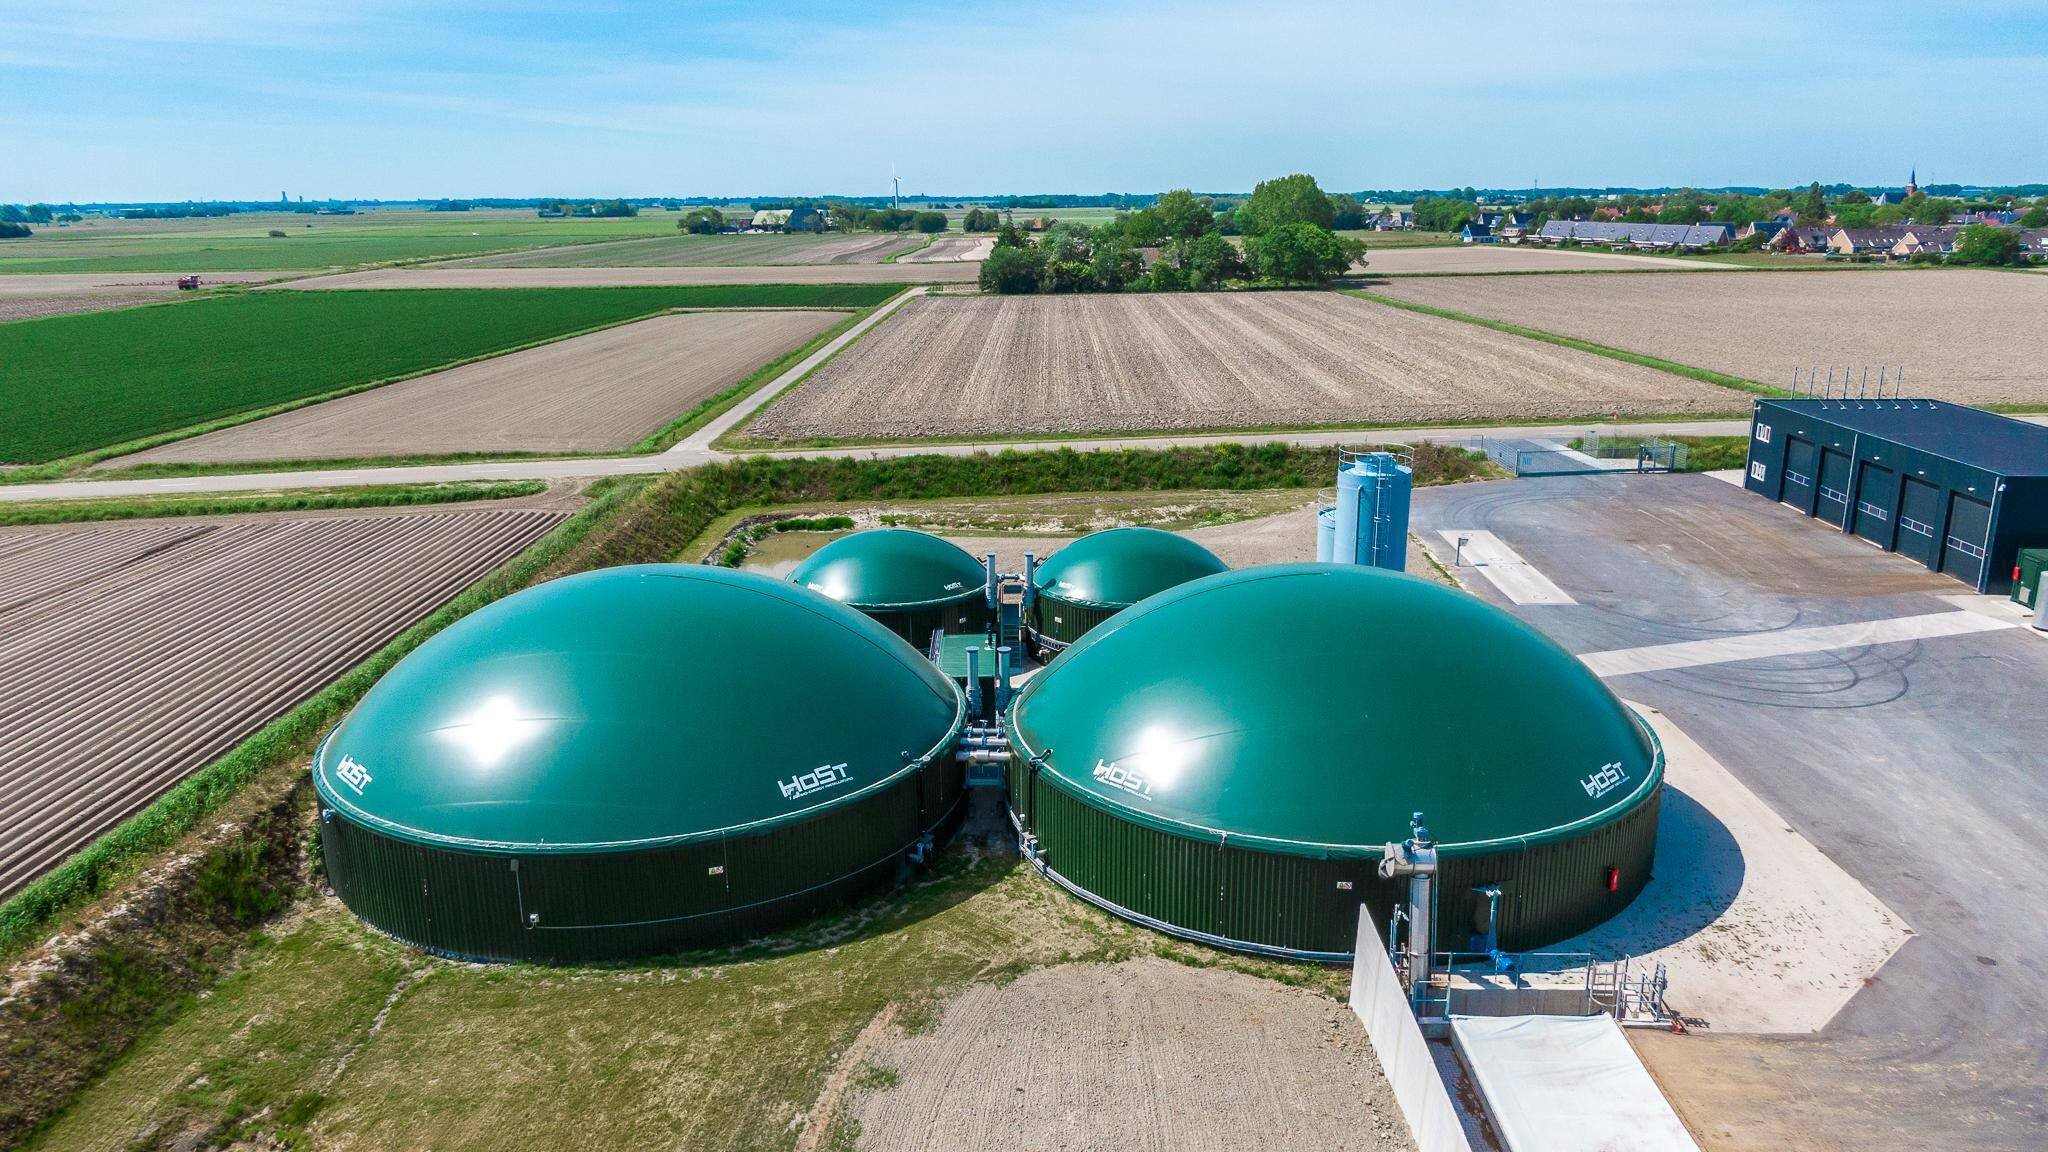 Gallery image 1 - HoSt is a major supplier of agricultural biogas plants, suitable for any agricultural residual flow. HoSt has supplied a large number of agricultural biogas plants for the anaerobic digestion of manure and agricultural products in combination with food waste worldwide.